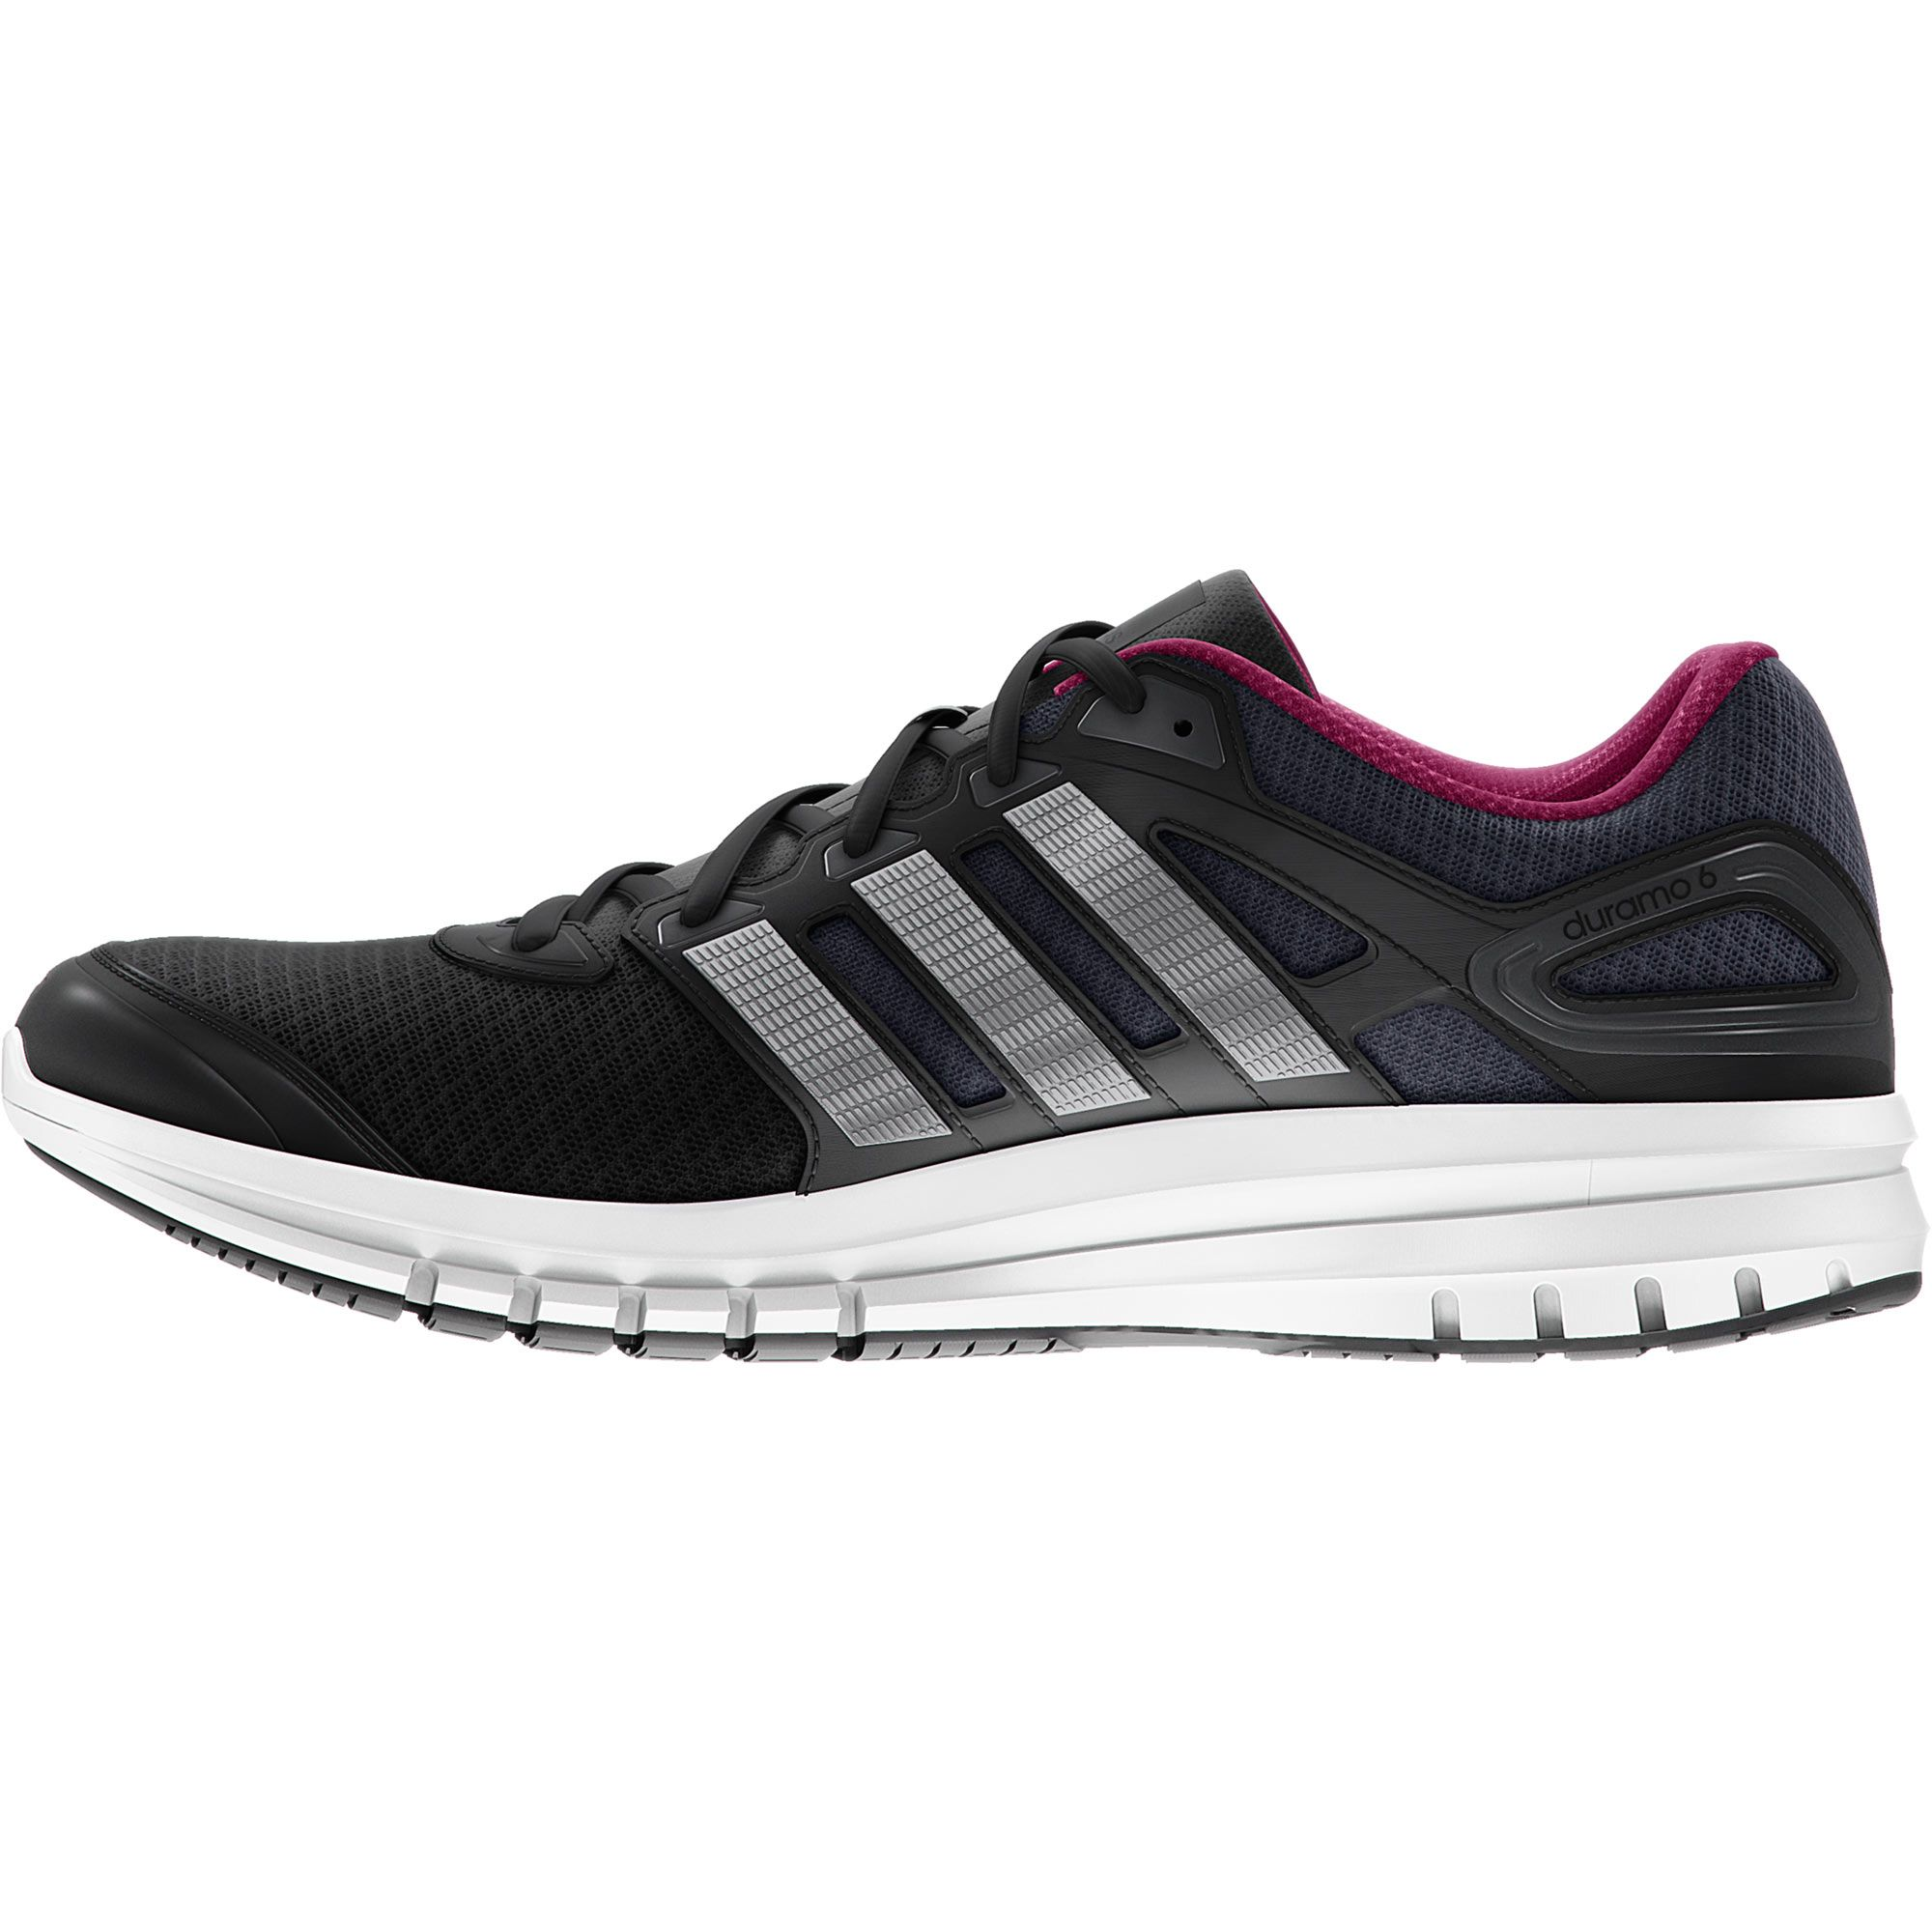 Shoes, Adidas women, Adidas sneakers